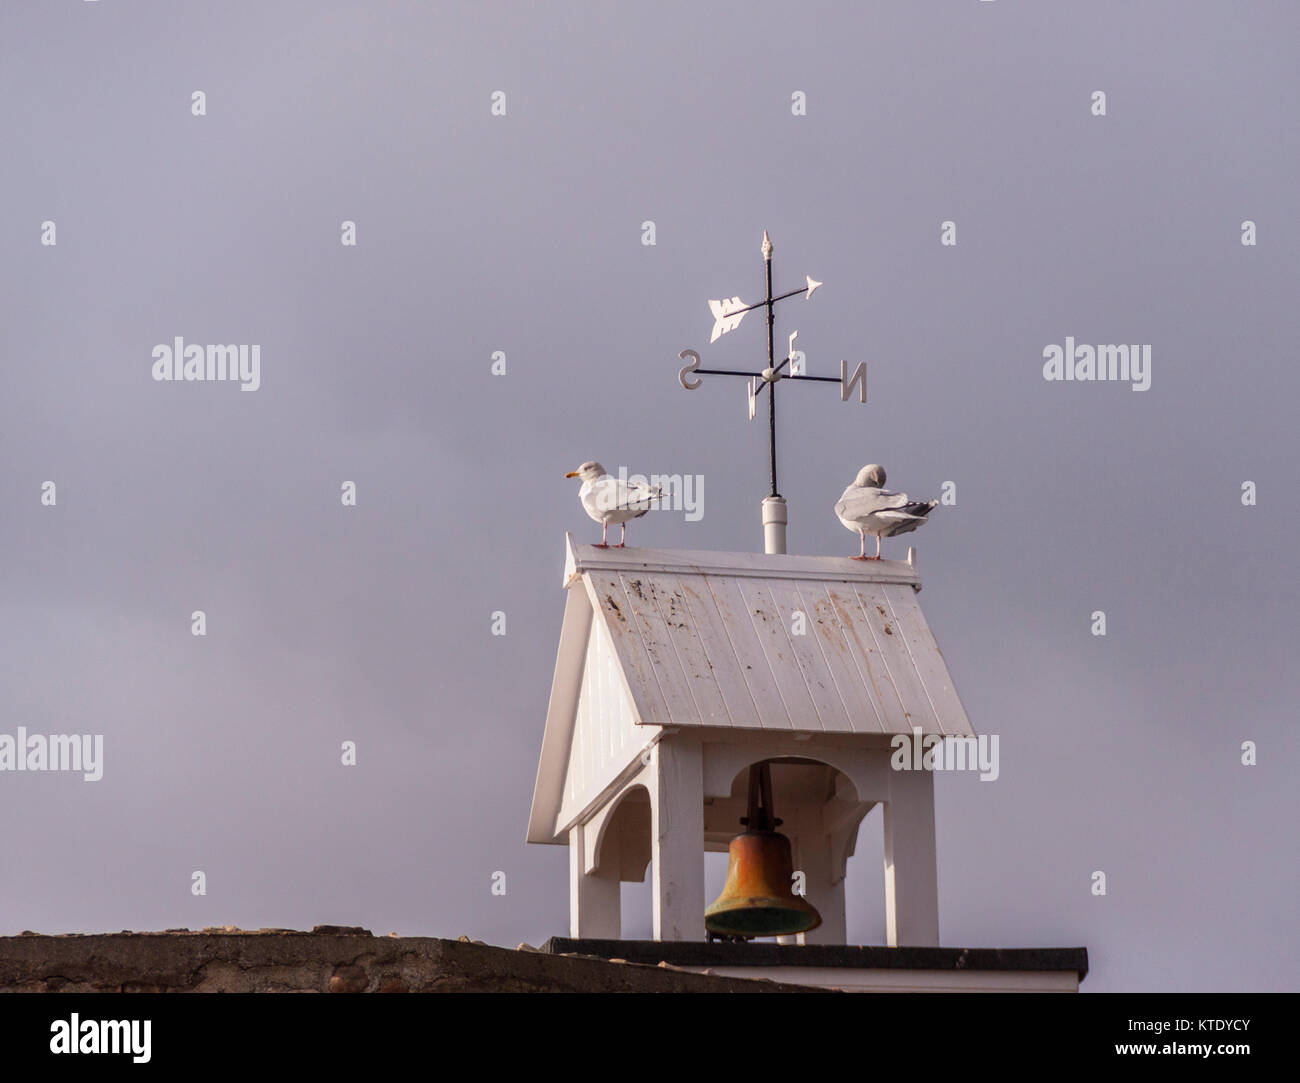 Seagulls sit on top of the clock tower in Connaught Gardens, Sidmouth. - Stock Image